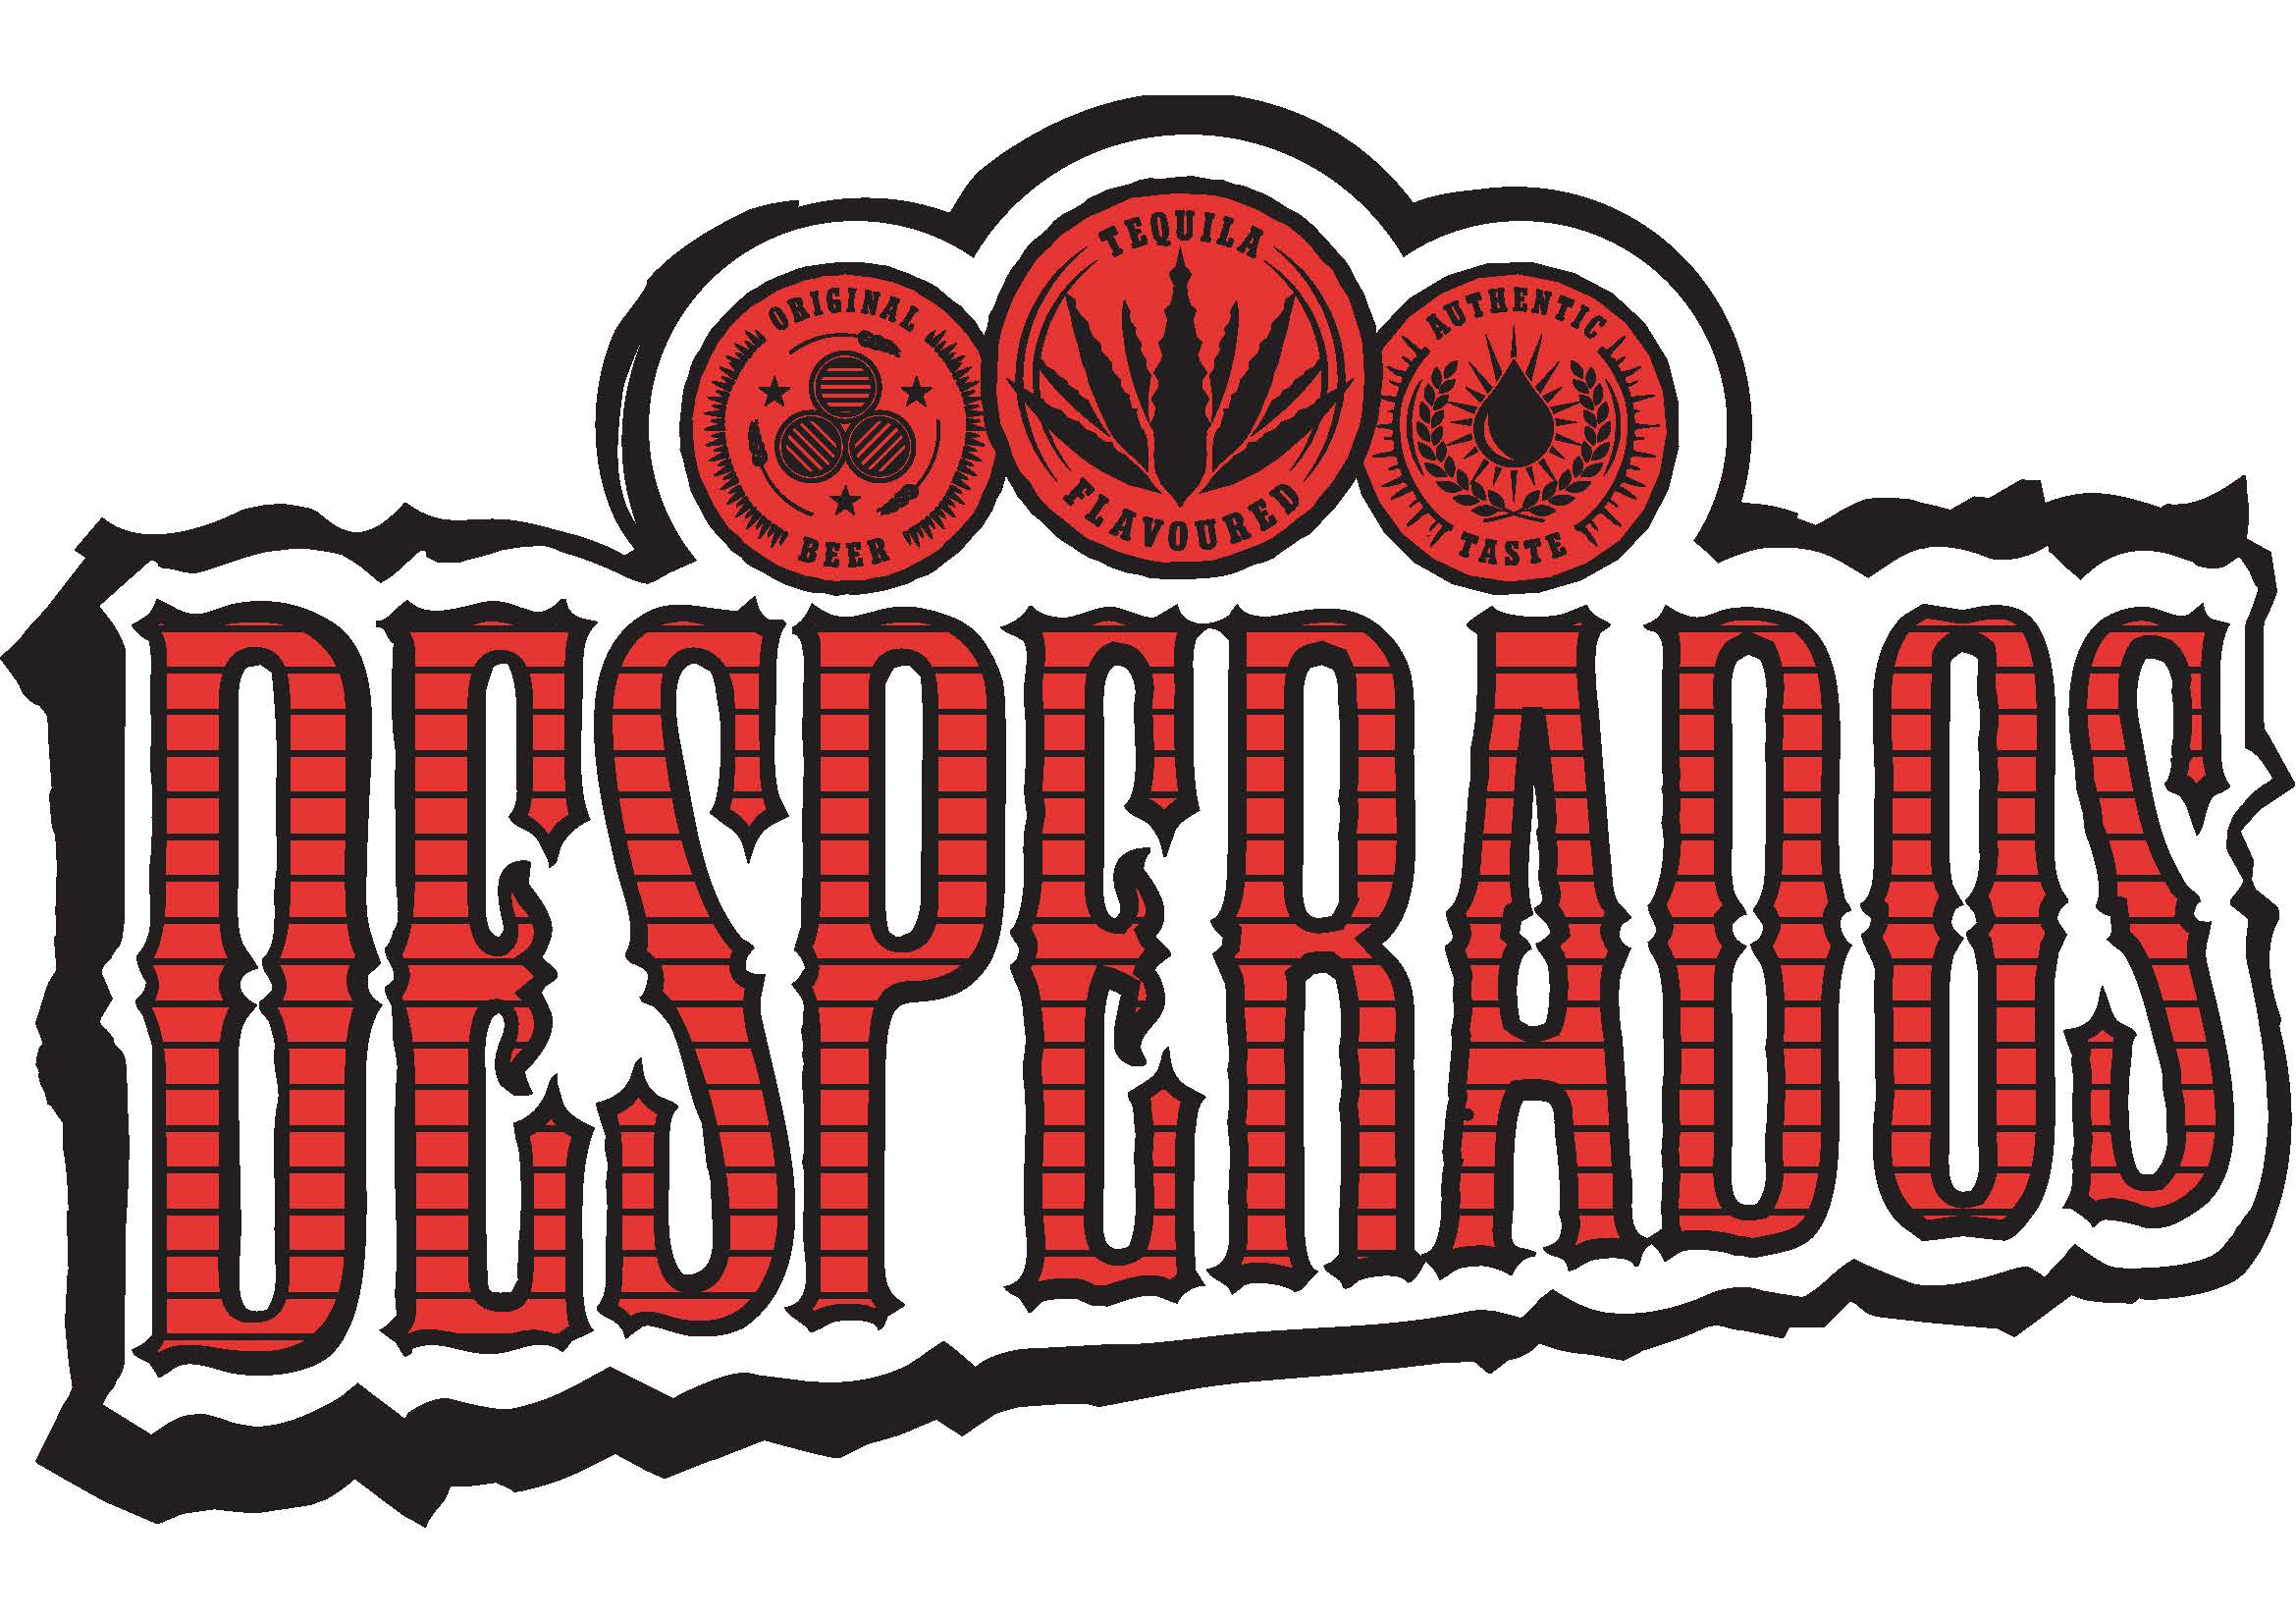 Logo Desperados Originale Copia